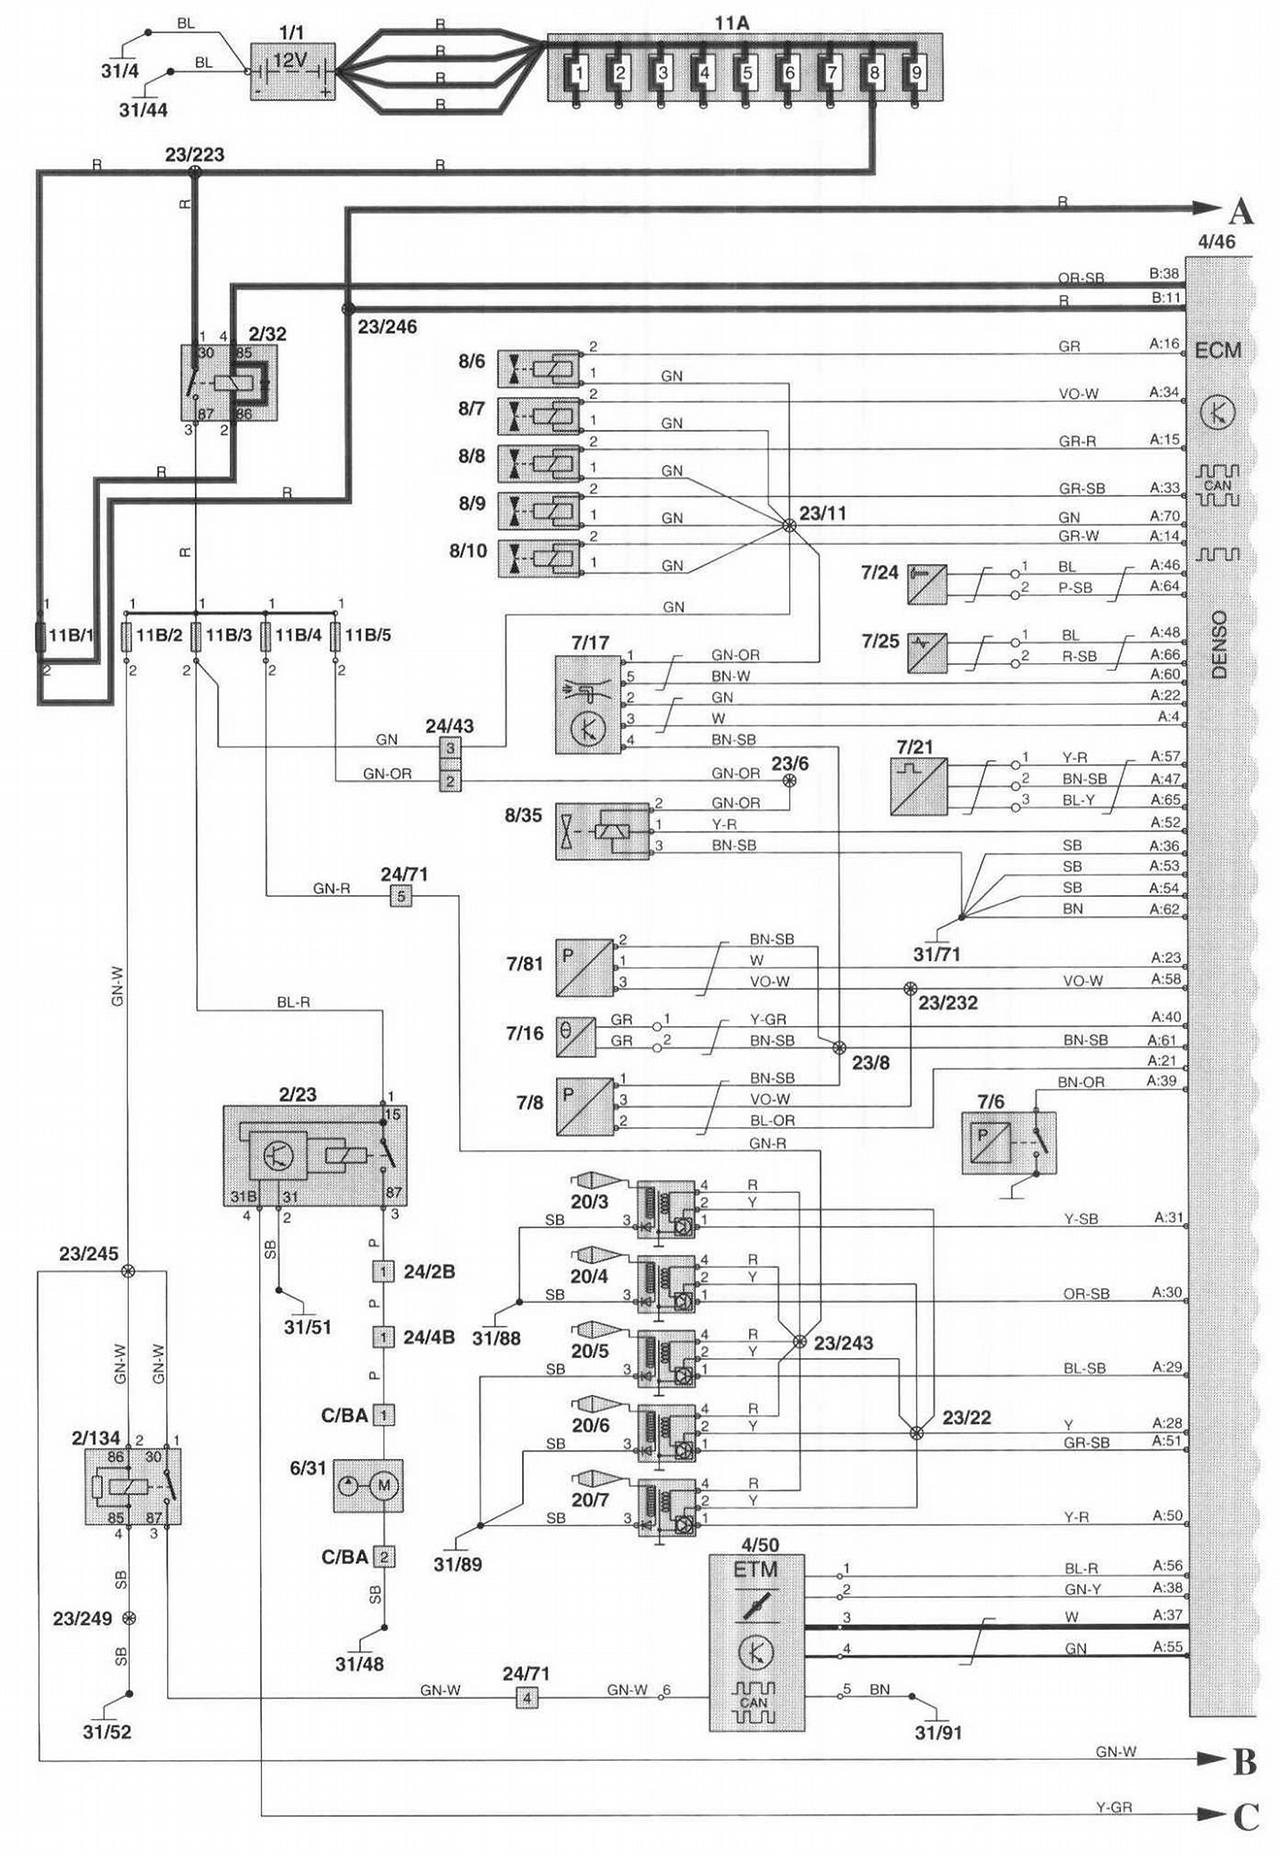 gl break sensor wiring diagram alternator    wiring       diagram    volvo penta auto electrical  alternator    wiring       diagram    volvo penta auto electrical